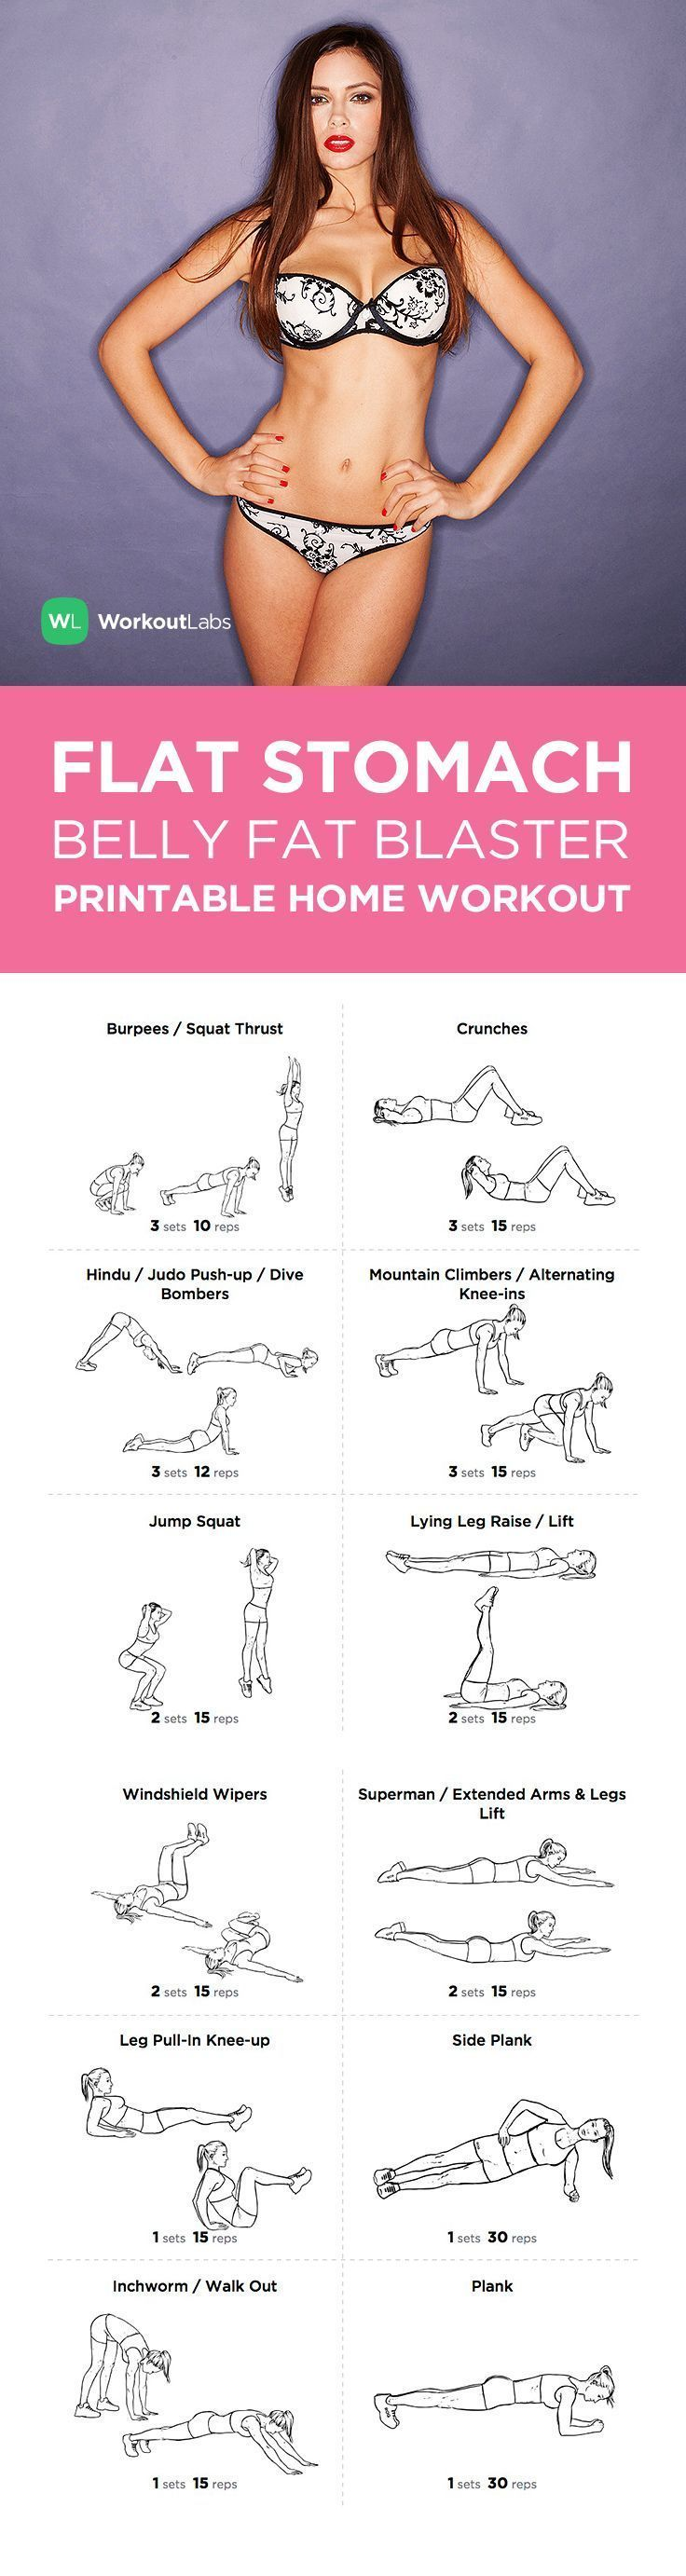 Want toned, flat abs by this spring? Burn away love handles & get a sexy, smooth stomach right now with this home workout for beginners. Pin now, Check later.